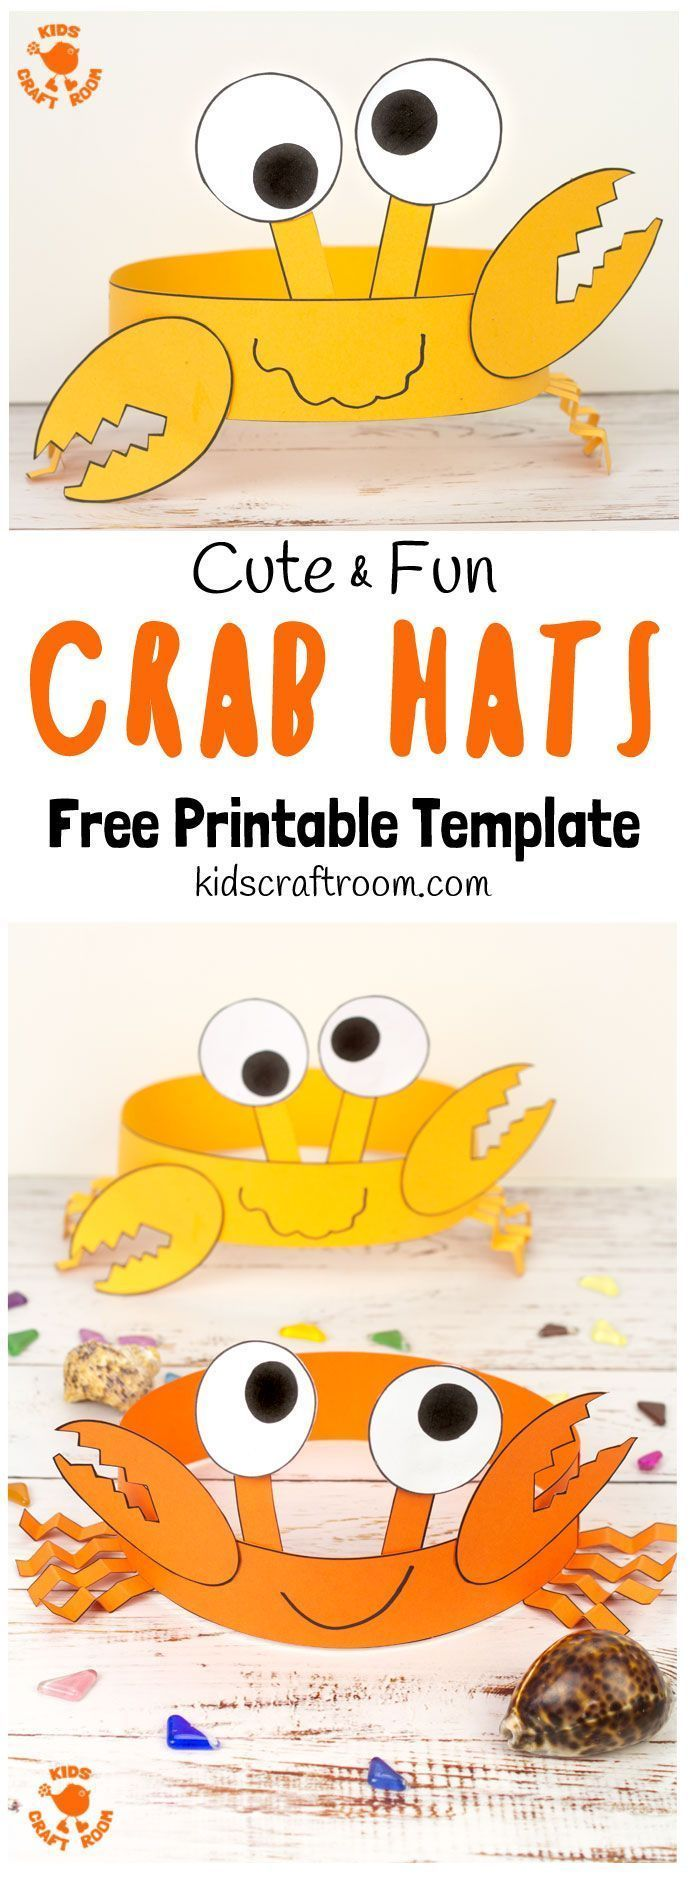 Cute and Fun Crab Hats #summerfunideasforkids